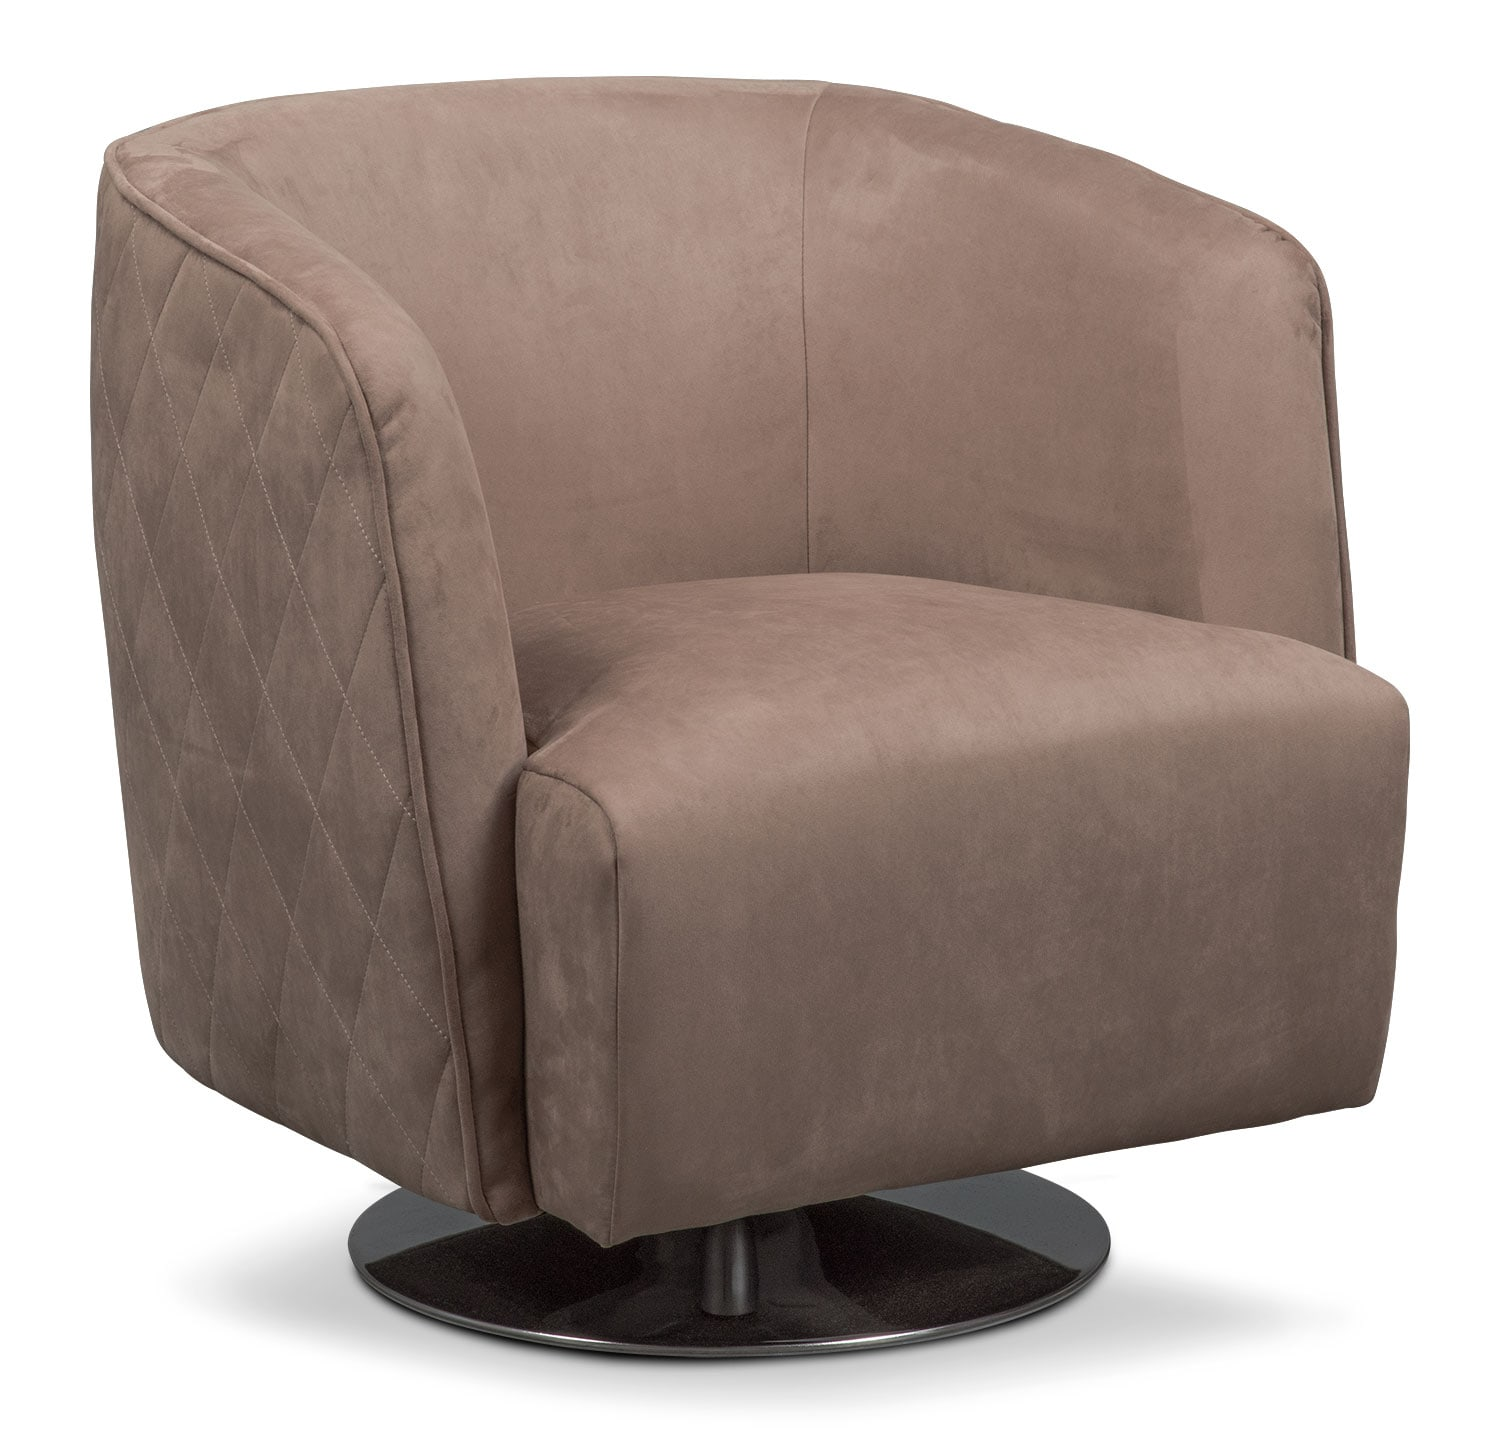 Living Room Furniture - Santana Swivel Chair - Taupe